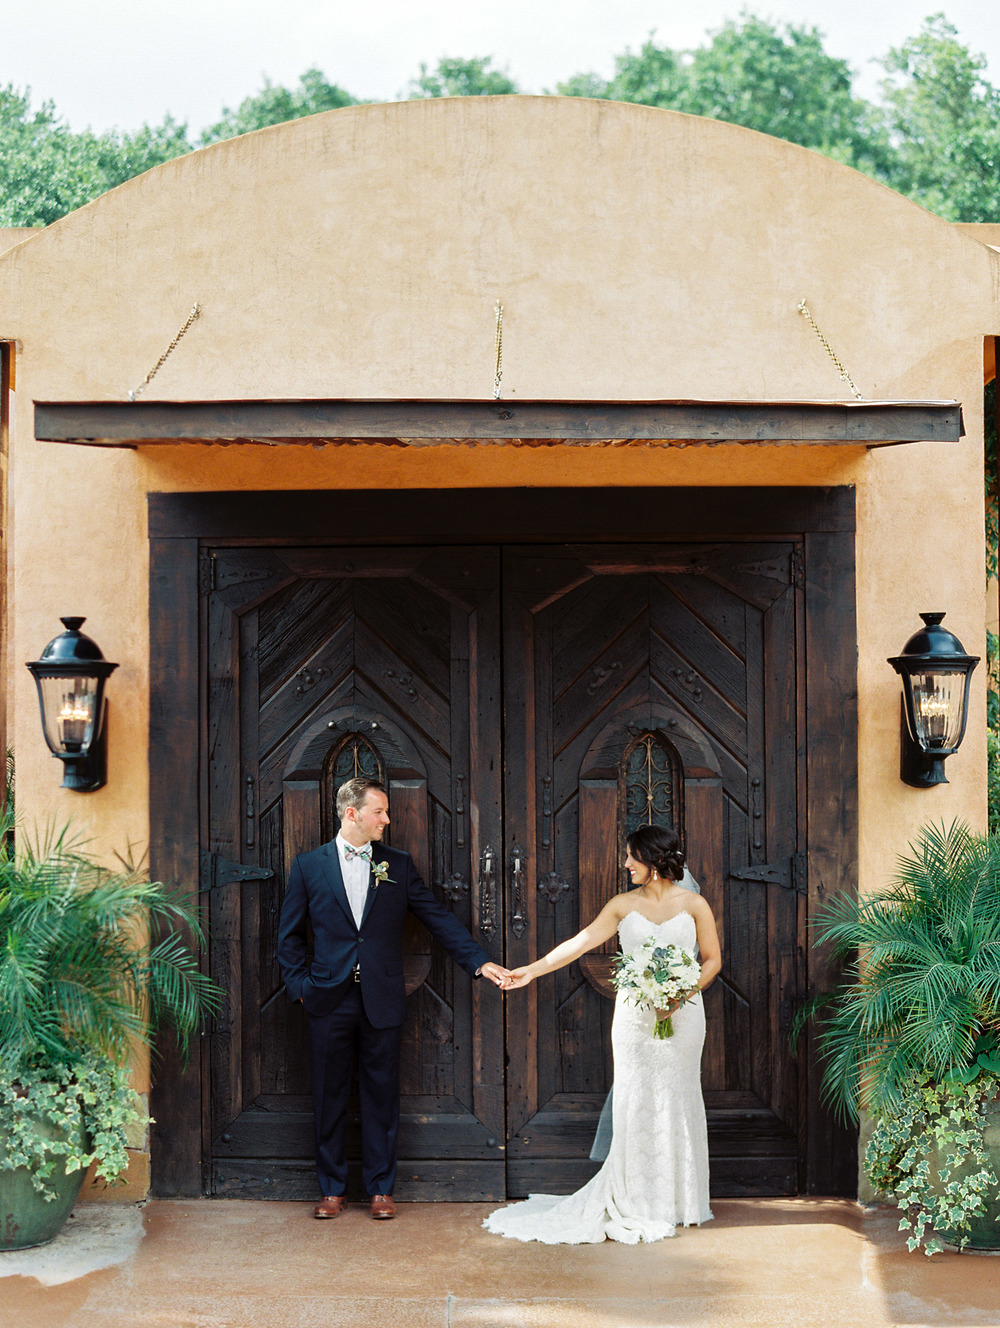 Dana Fernandez Photography Agave Road Agave Estates Houston Texas Wedding Photographer Destination Southwest Film-37.jpg